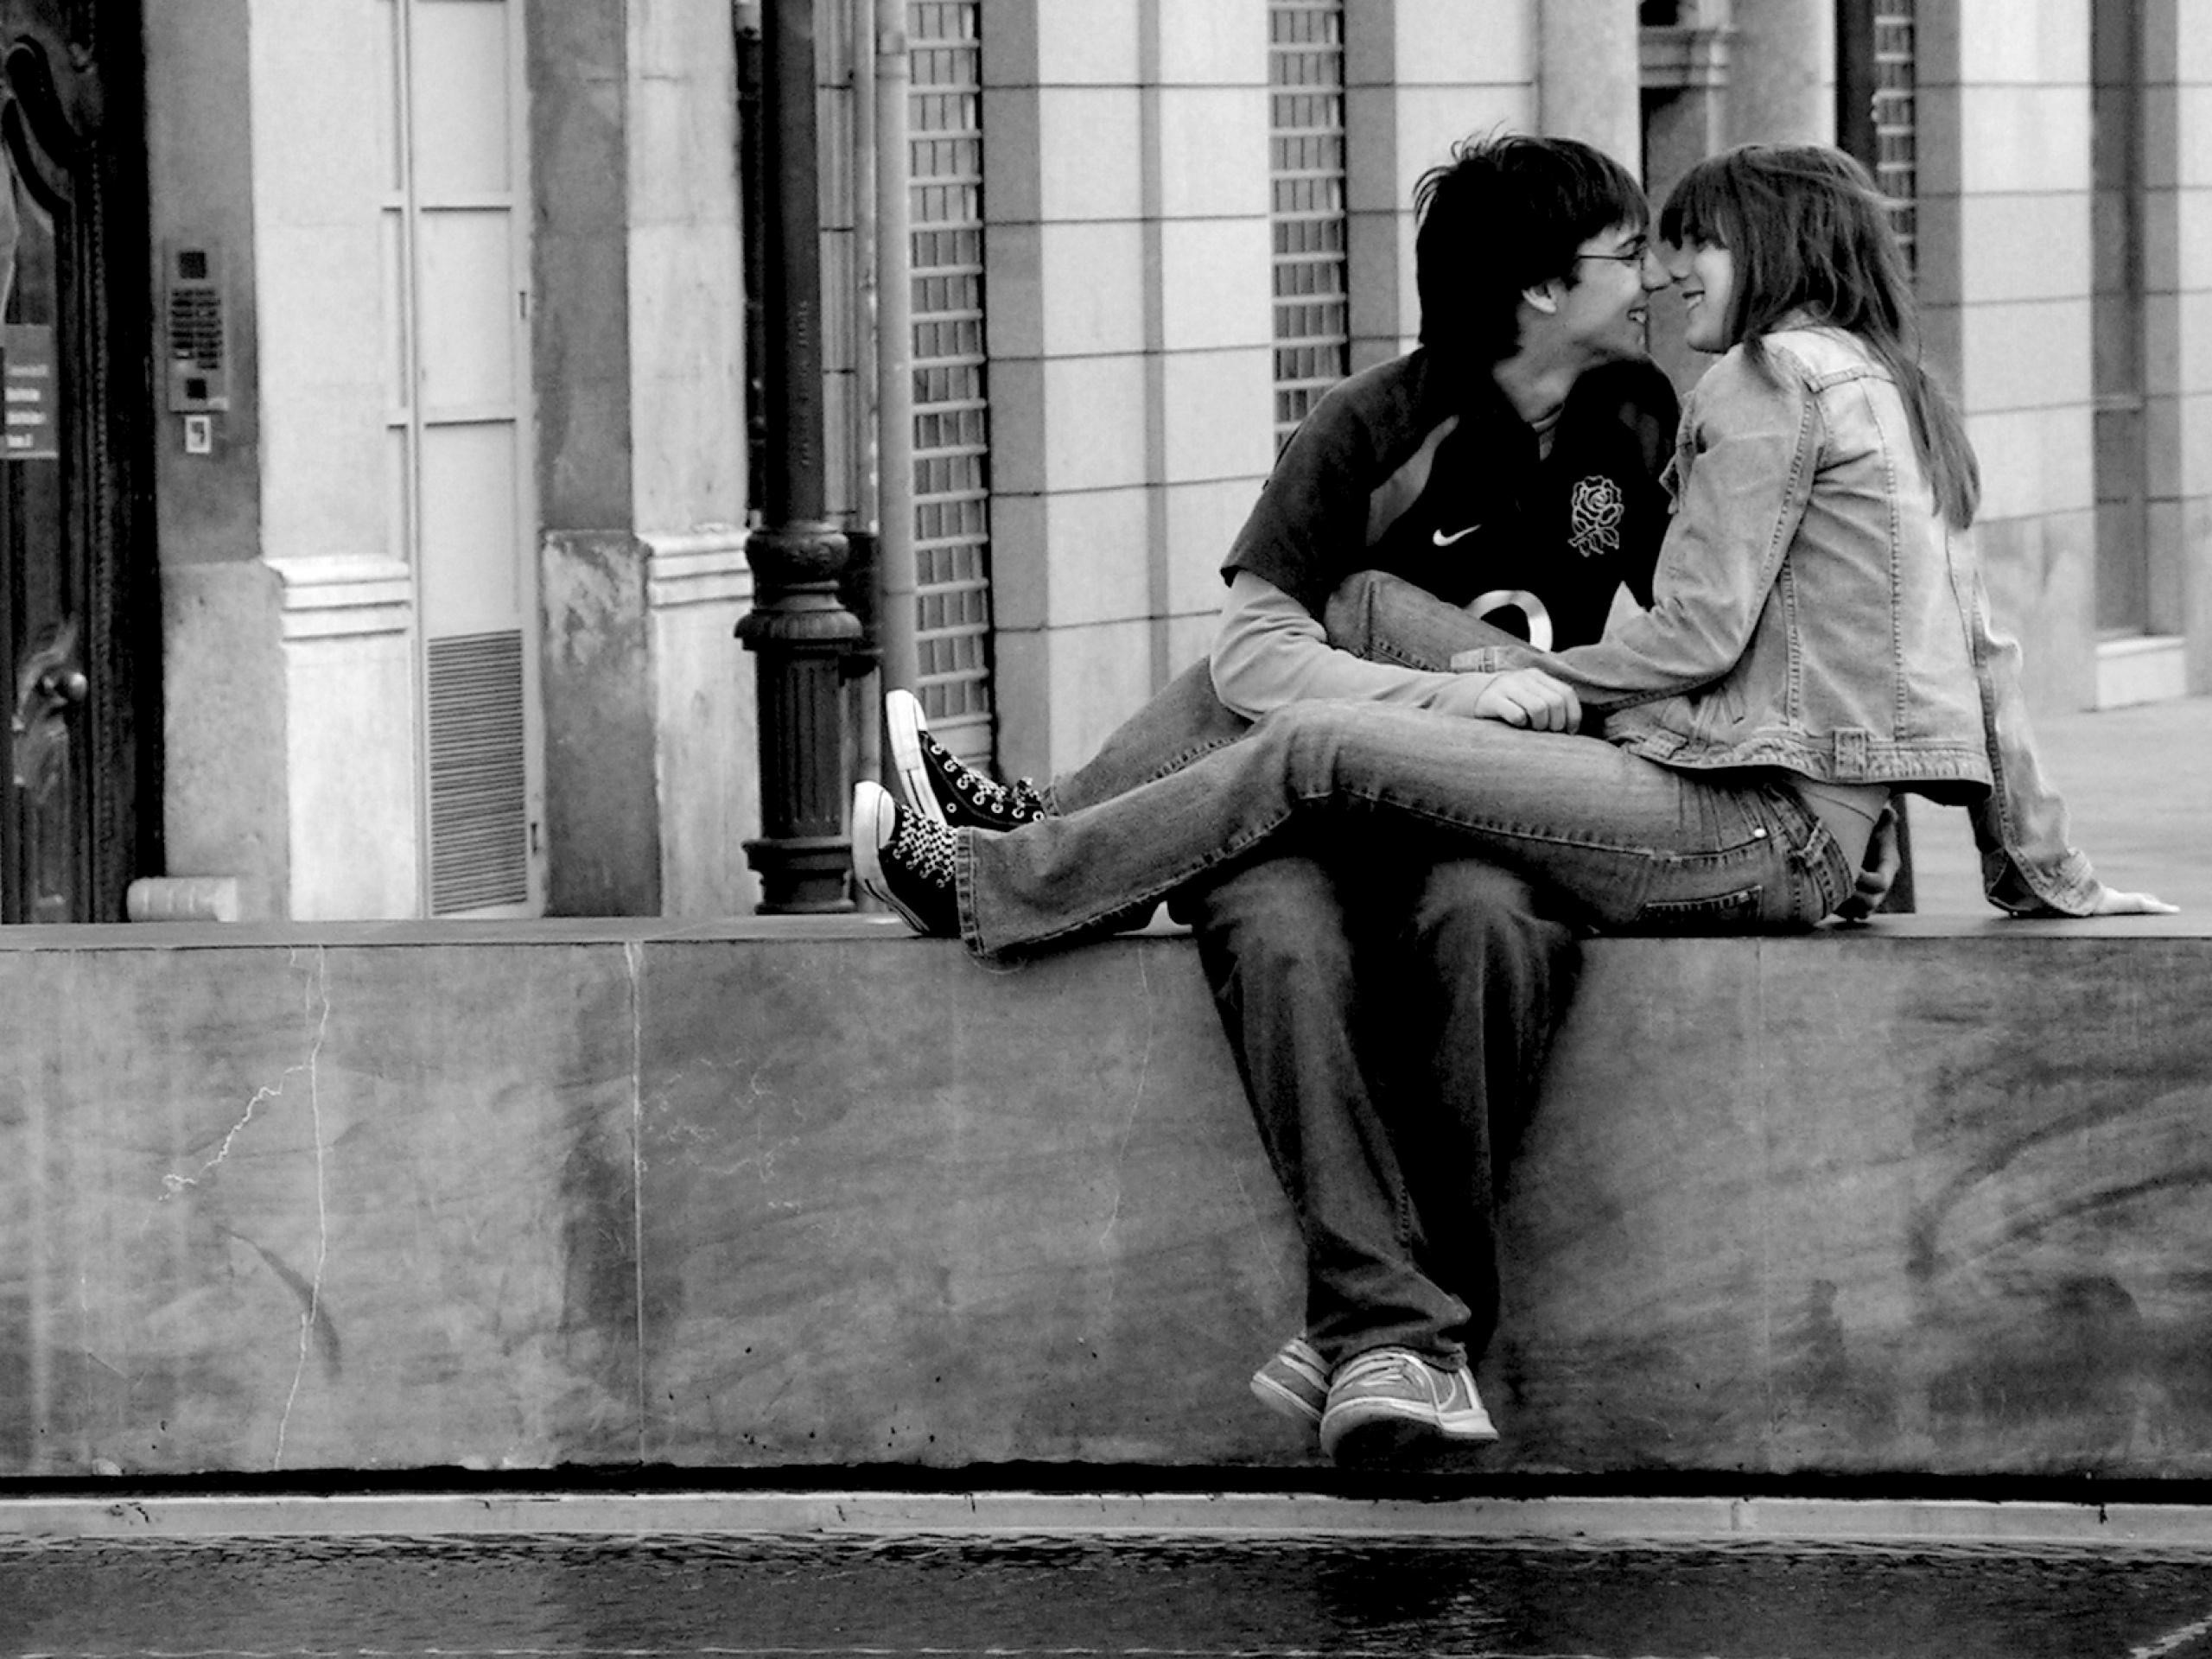 Romantic Couple Love Black and White Wallpaper HD Wallpapers 2560x1920